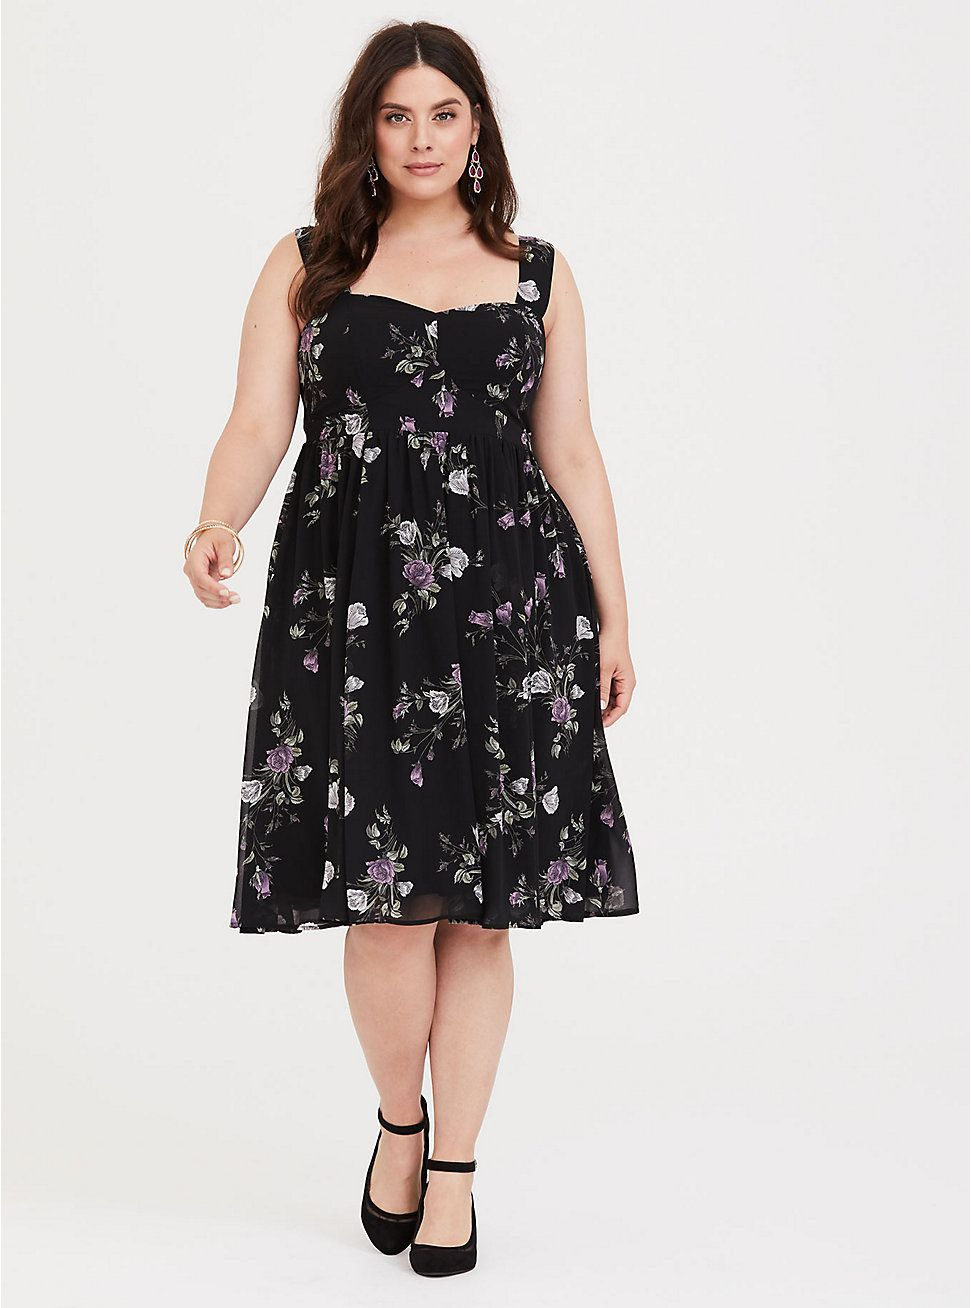 59a71af5f35 Special Occasion Black Floral Sweetheart Midi Dress in 2019 ...